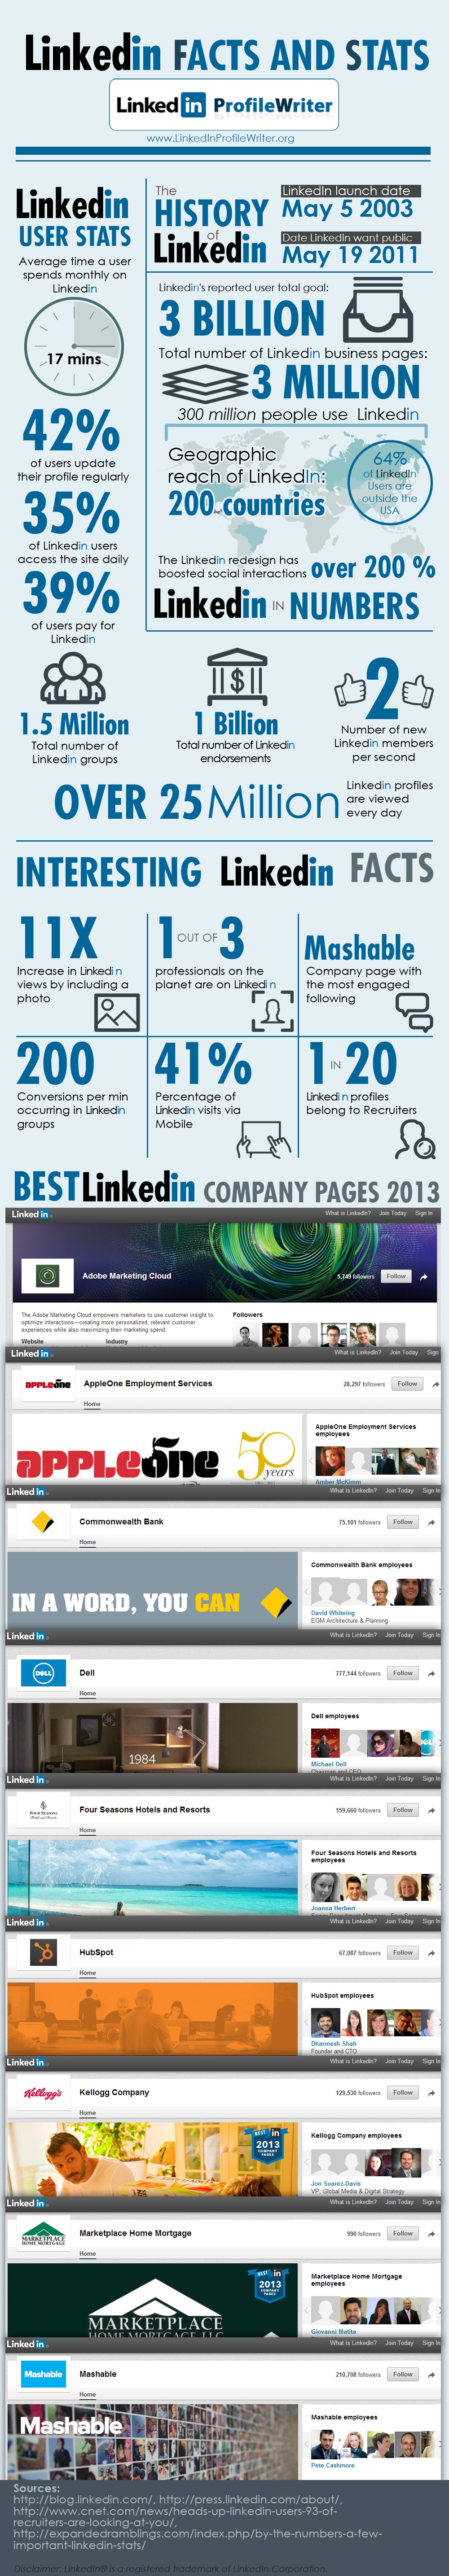 LinkedIn Facts and Stats [Infographic]